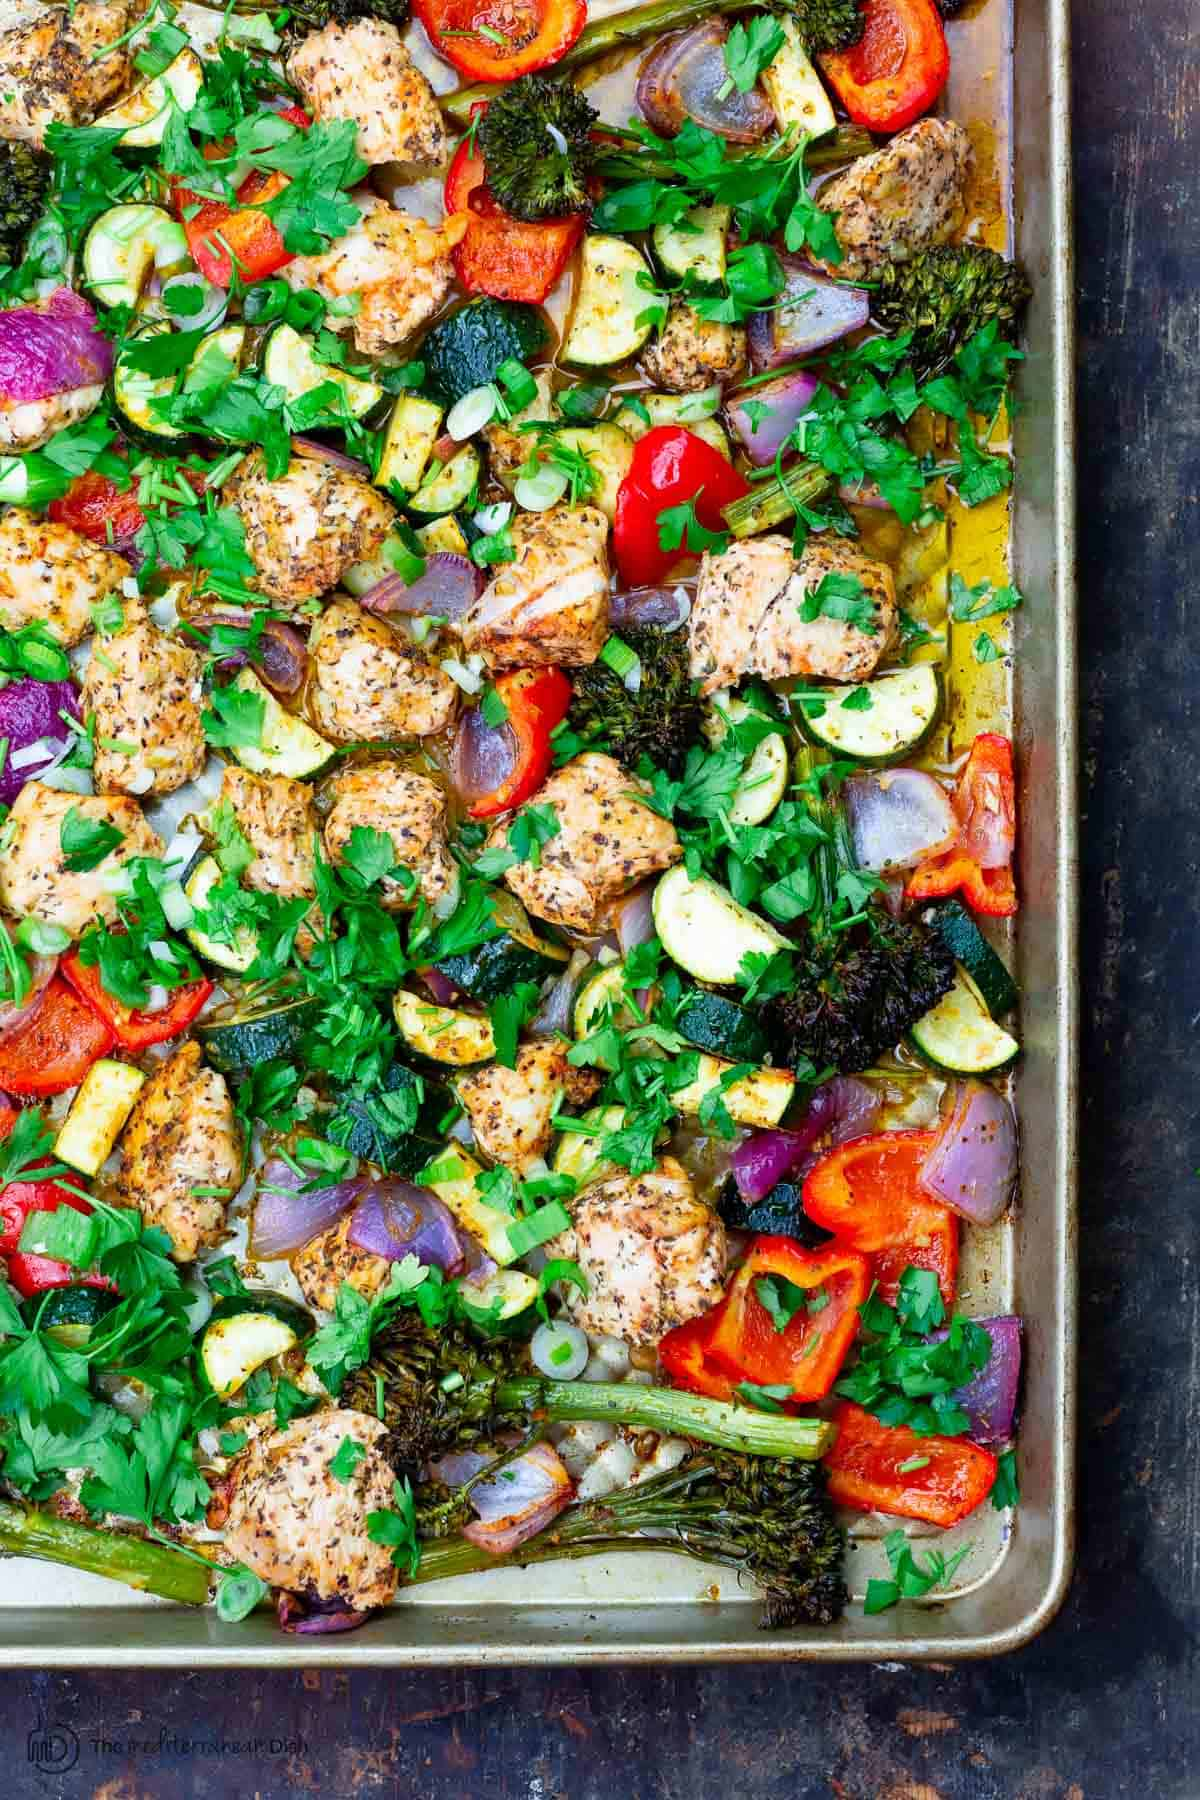 Italian-Style Sheet Pan Chicken with Vegetables